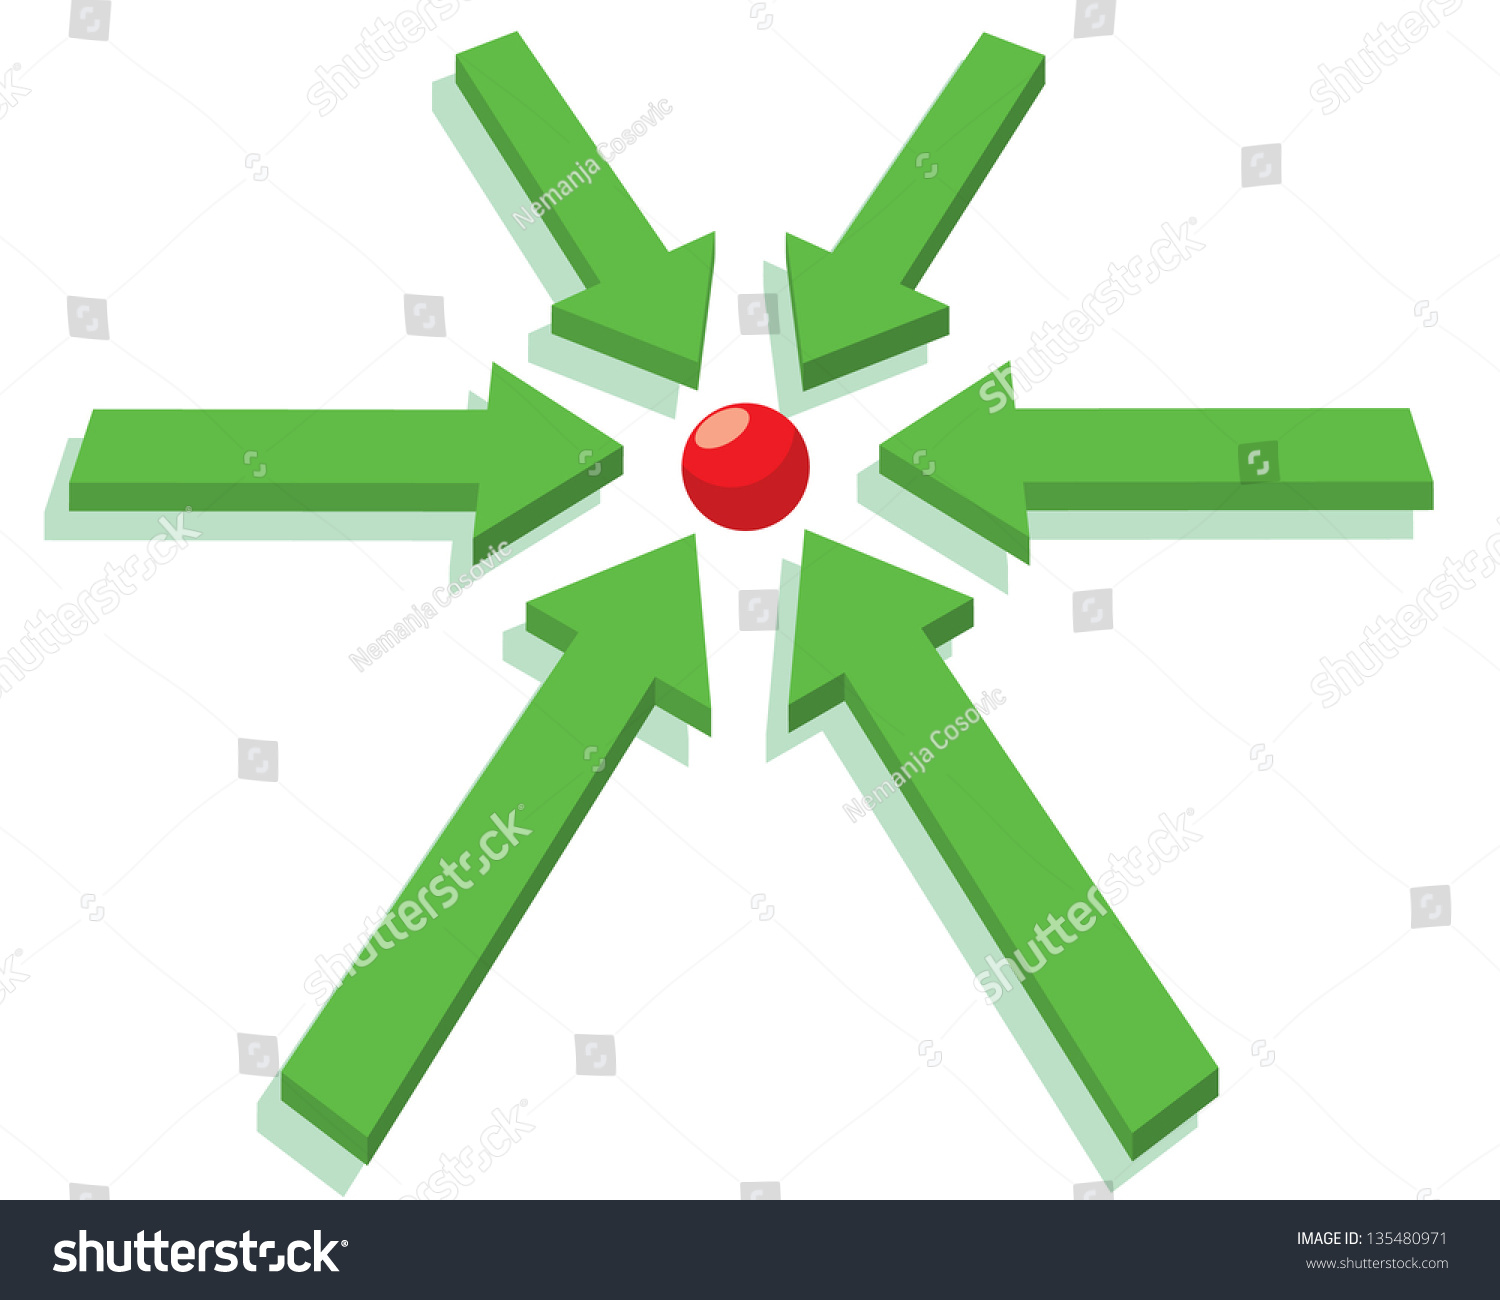 Green arrows pointing red dot center stock vector 135480971 green arrows pointing to red dot in center buycottarizona